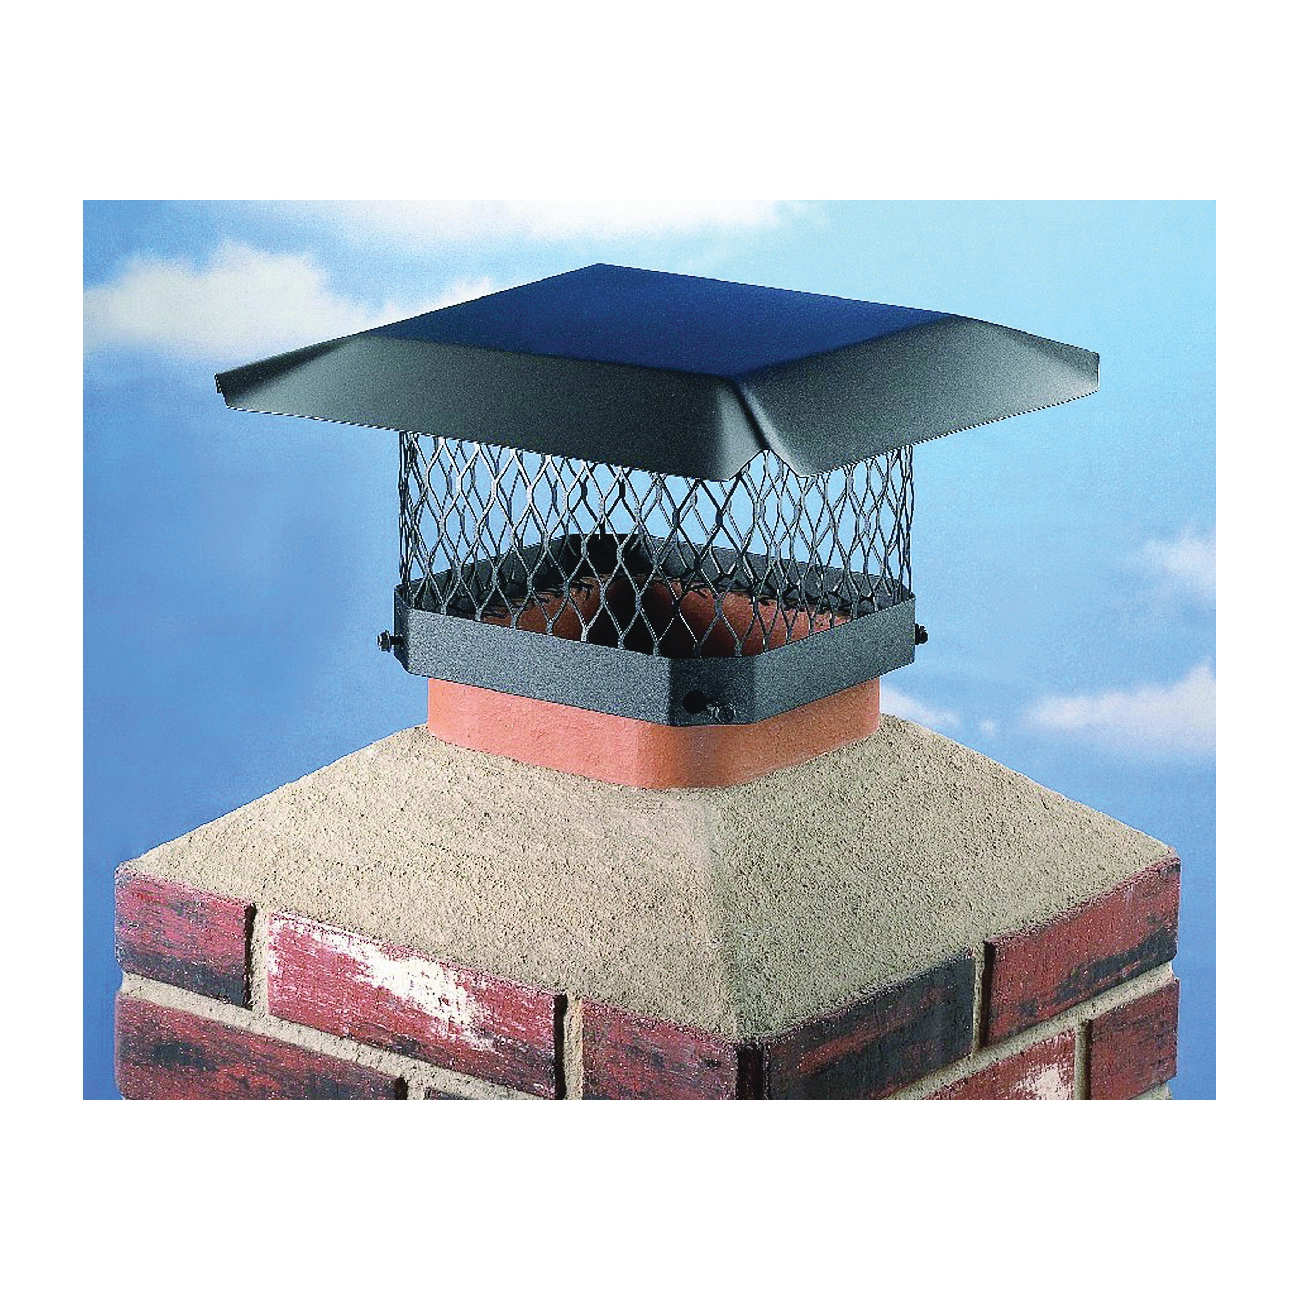 Picture of SHELTER SC913 Shelter Chimney Cap, Steel, Black, Powder-Coated, Fits Duct Size: 7-1/2 x 11-1/2 to 9-1/2 x 13-1/2 in